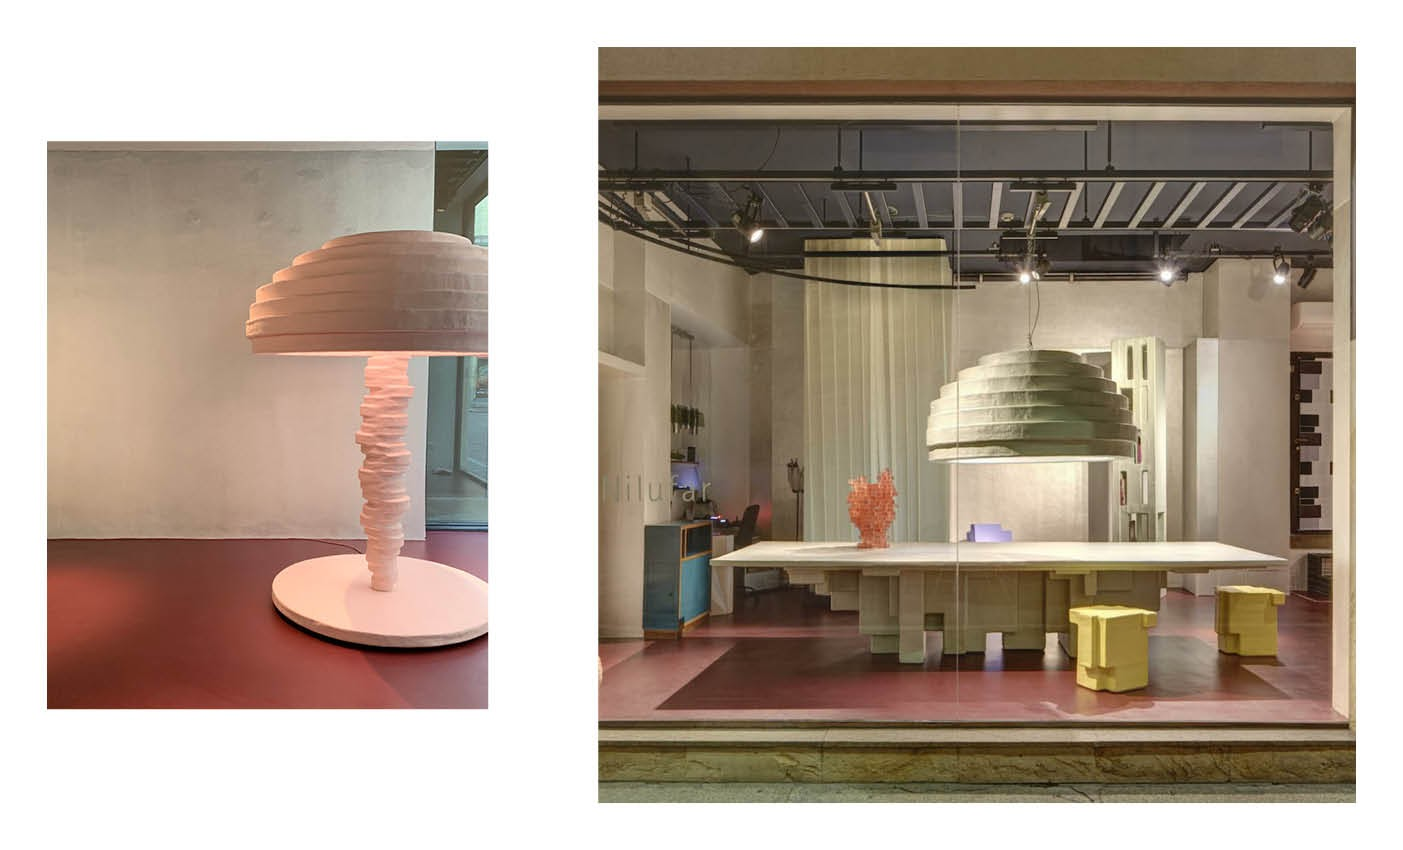 milan design week 2020 and nilufar its all about color exhibition by studio nucleo